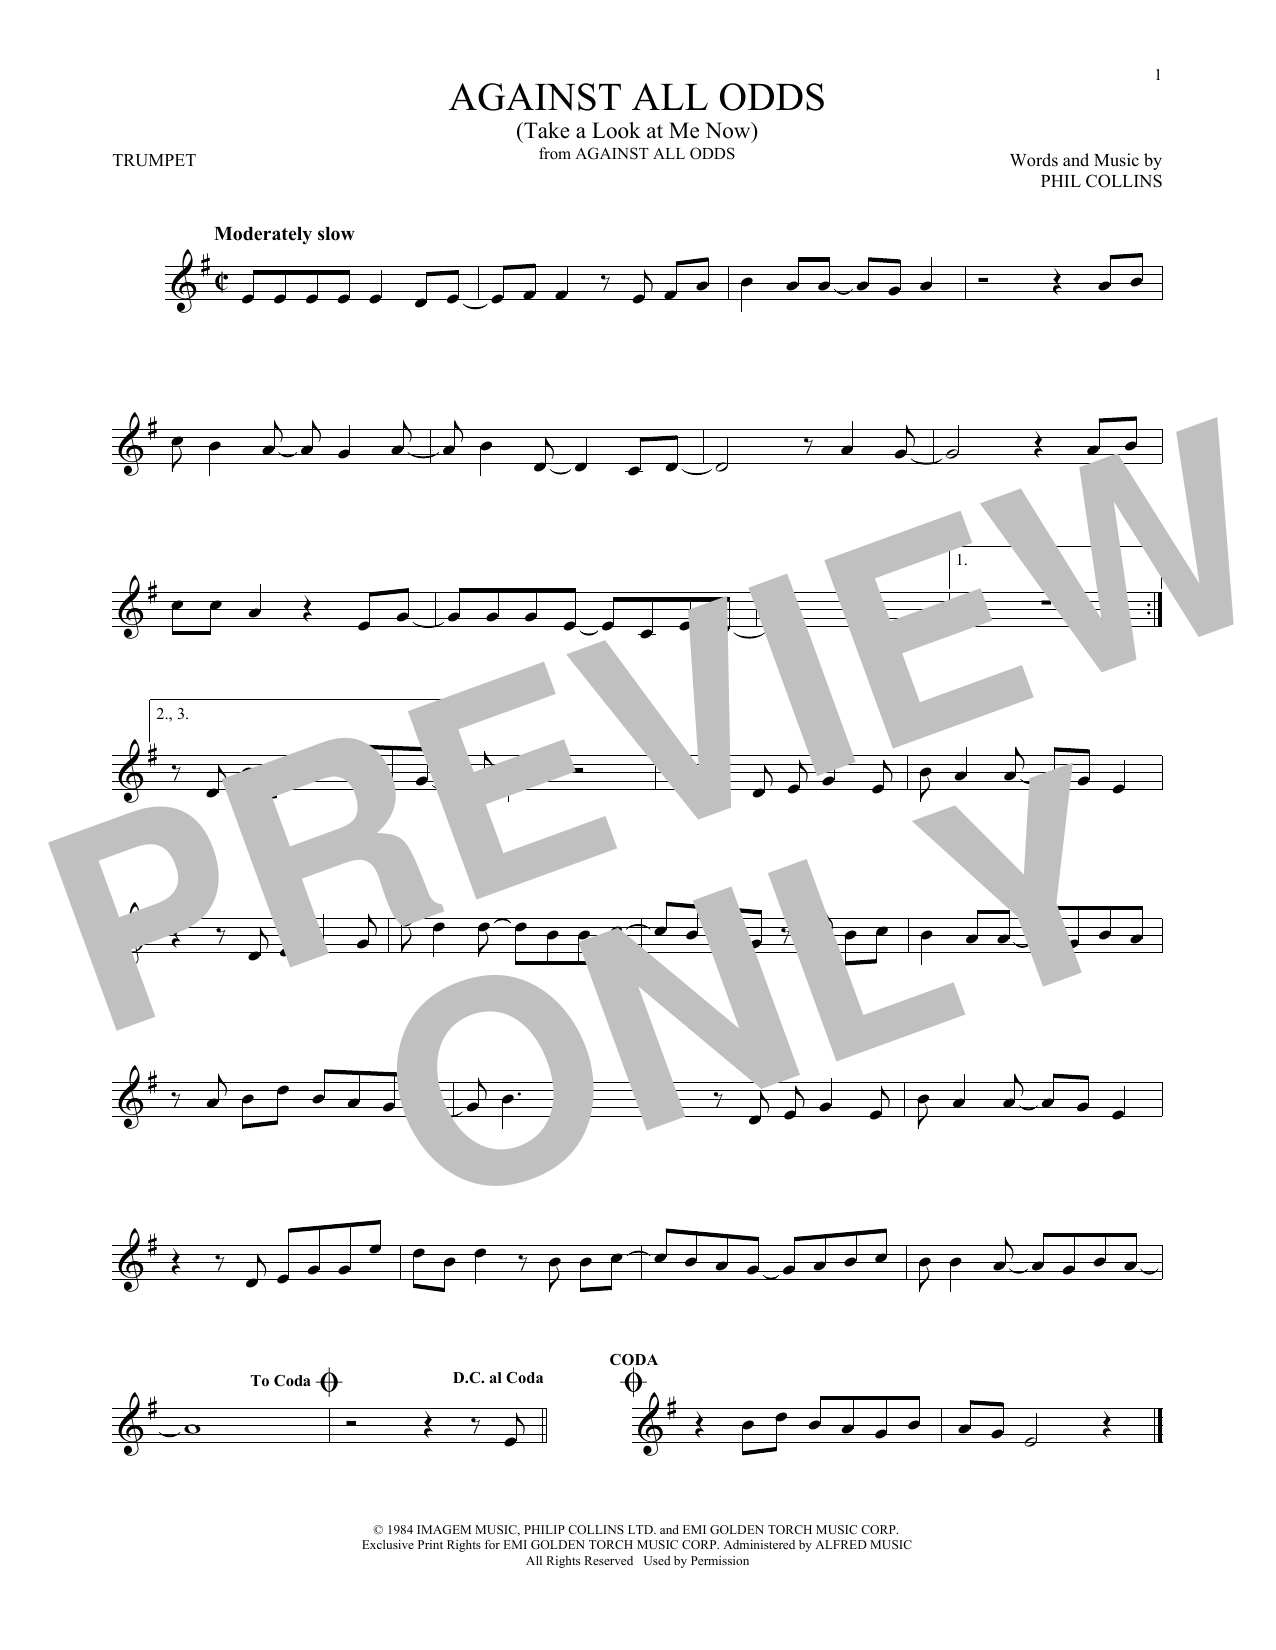 Against All Odds (Take A Look At Me Now) | Sheet Music Direct | 1276 x 1650 png 142kB